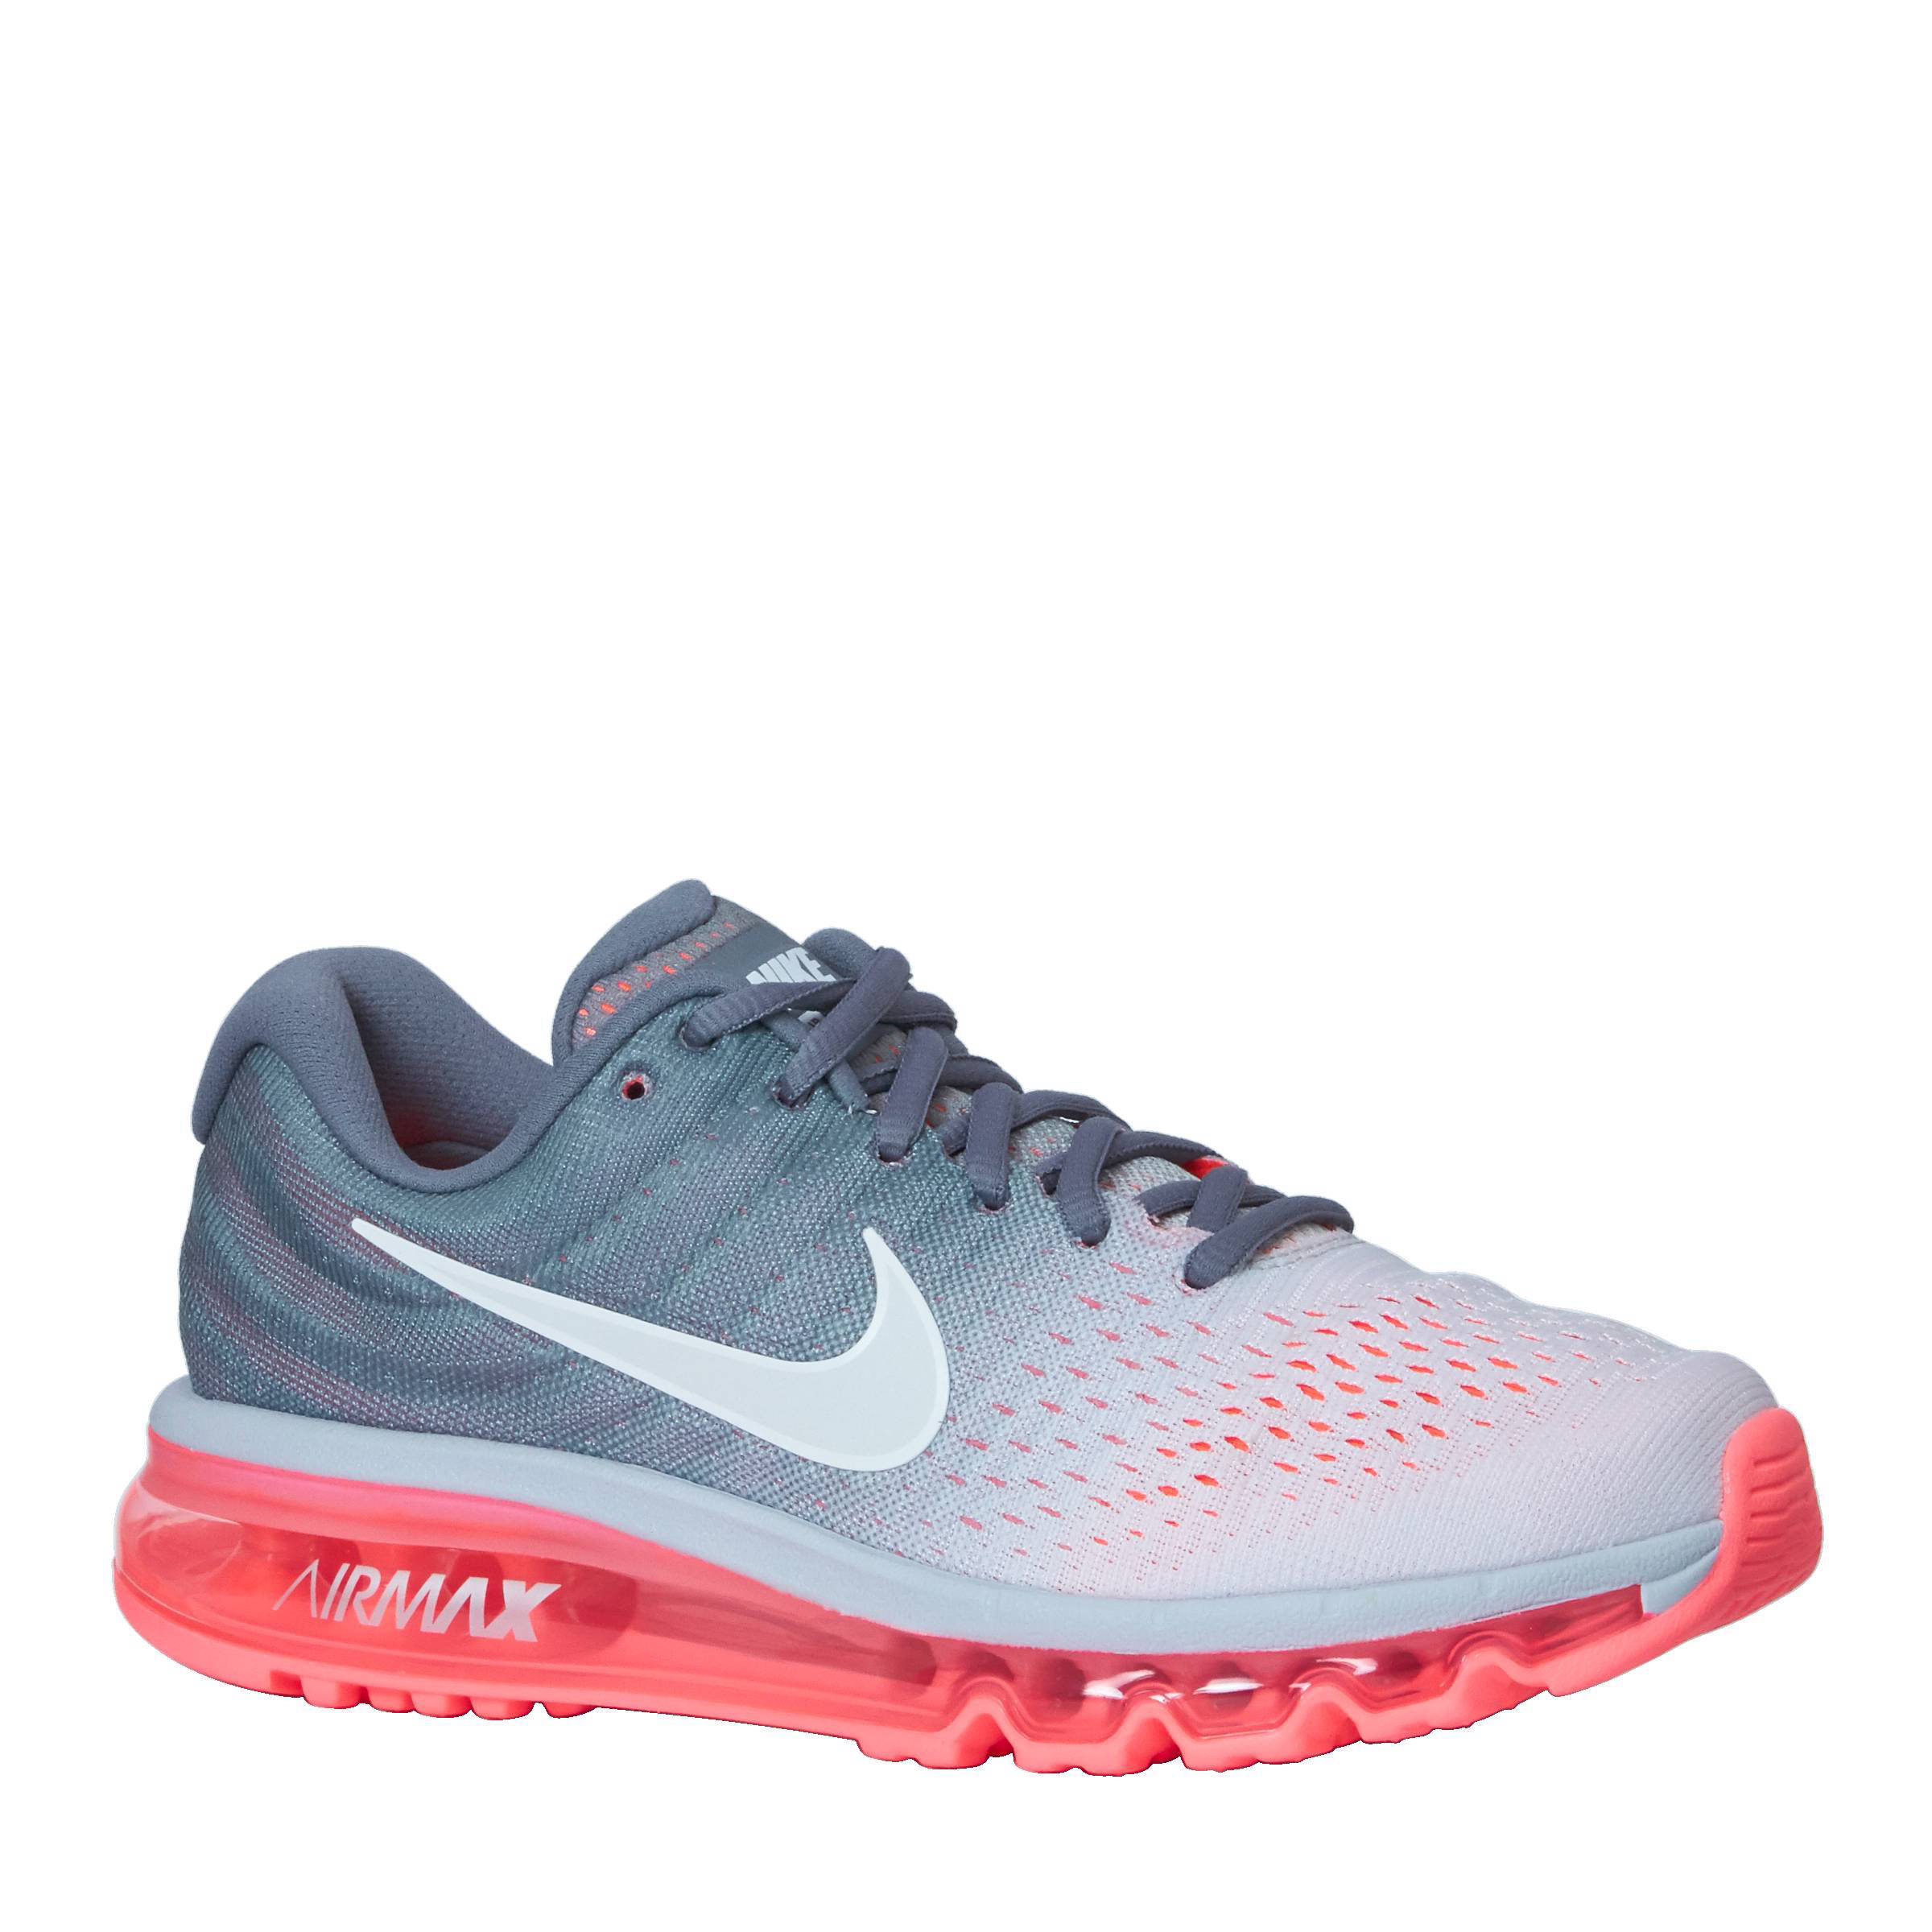 nike air max 2017 roze wit